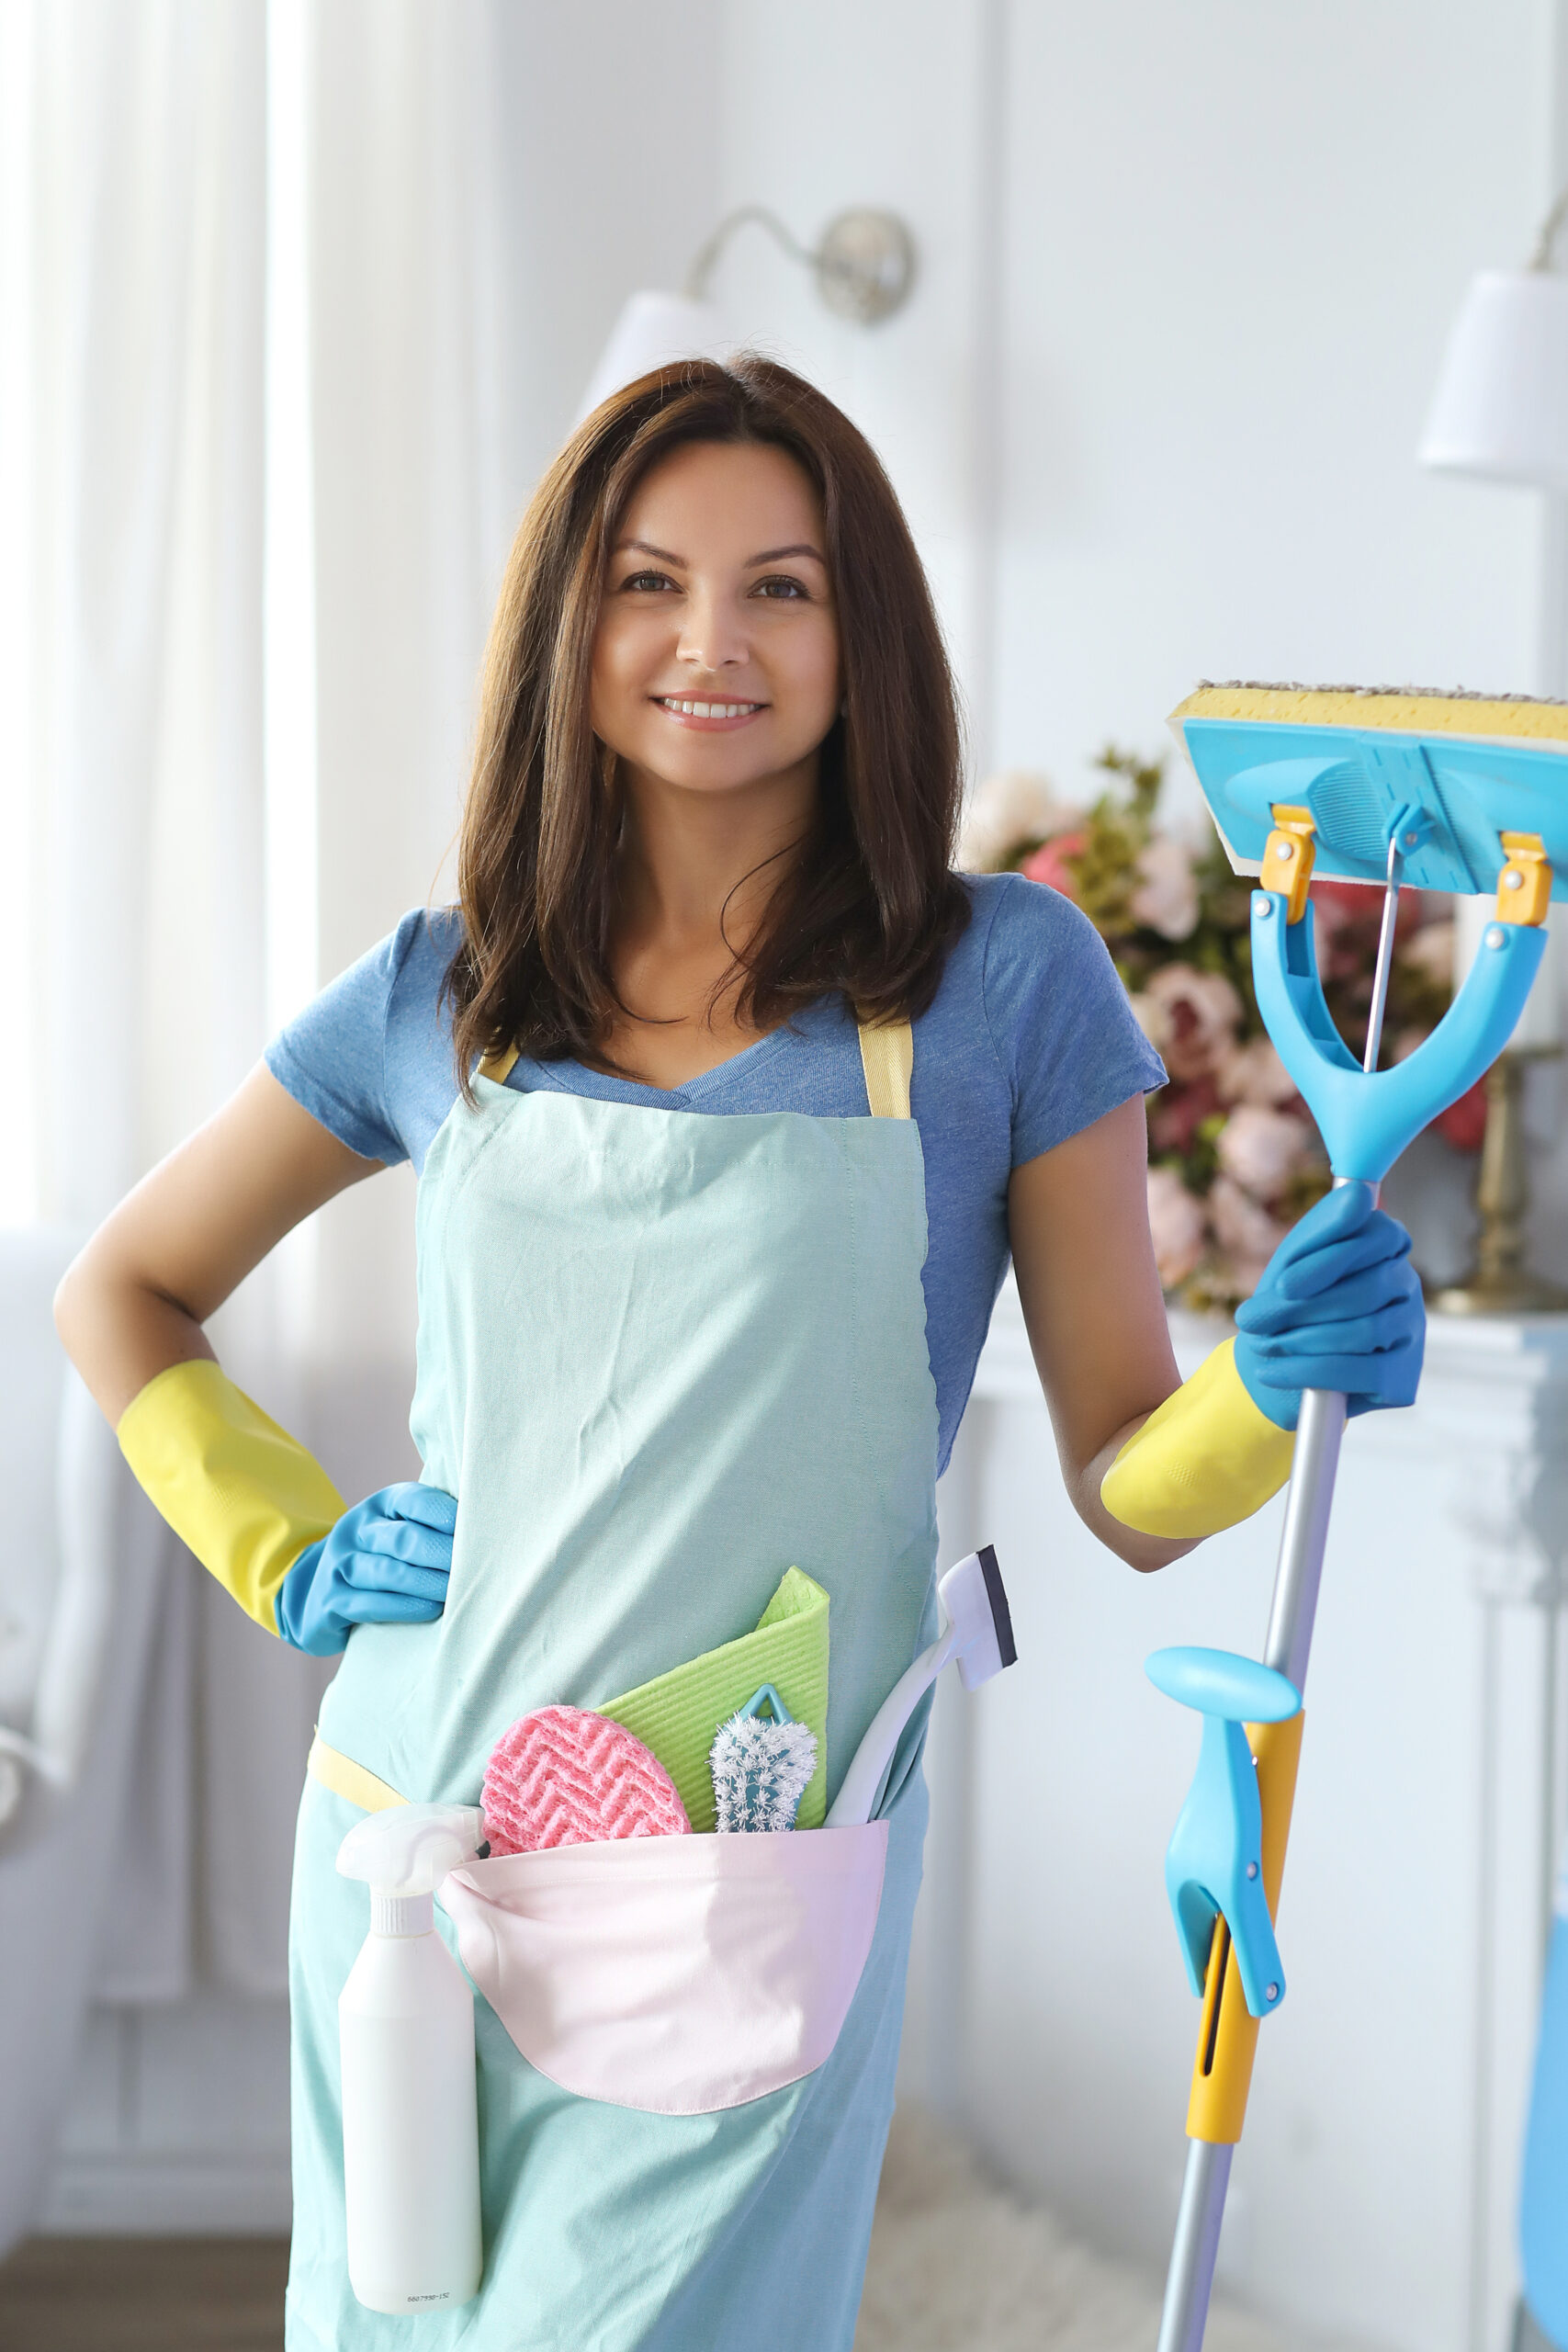 Cleaning Products Manufacturer & Supplier in UAE